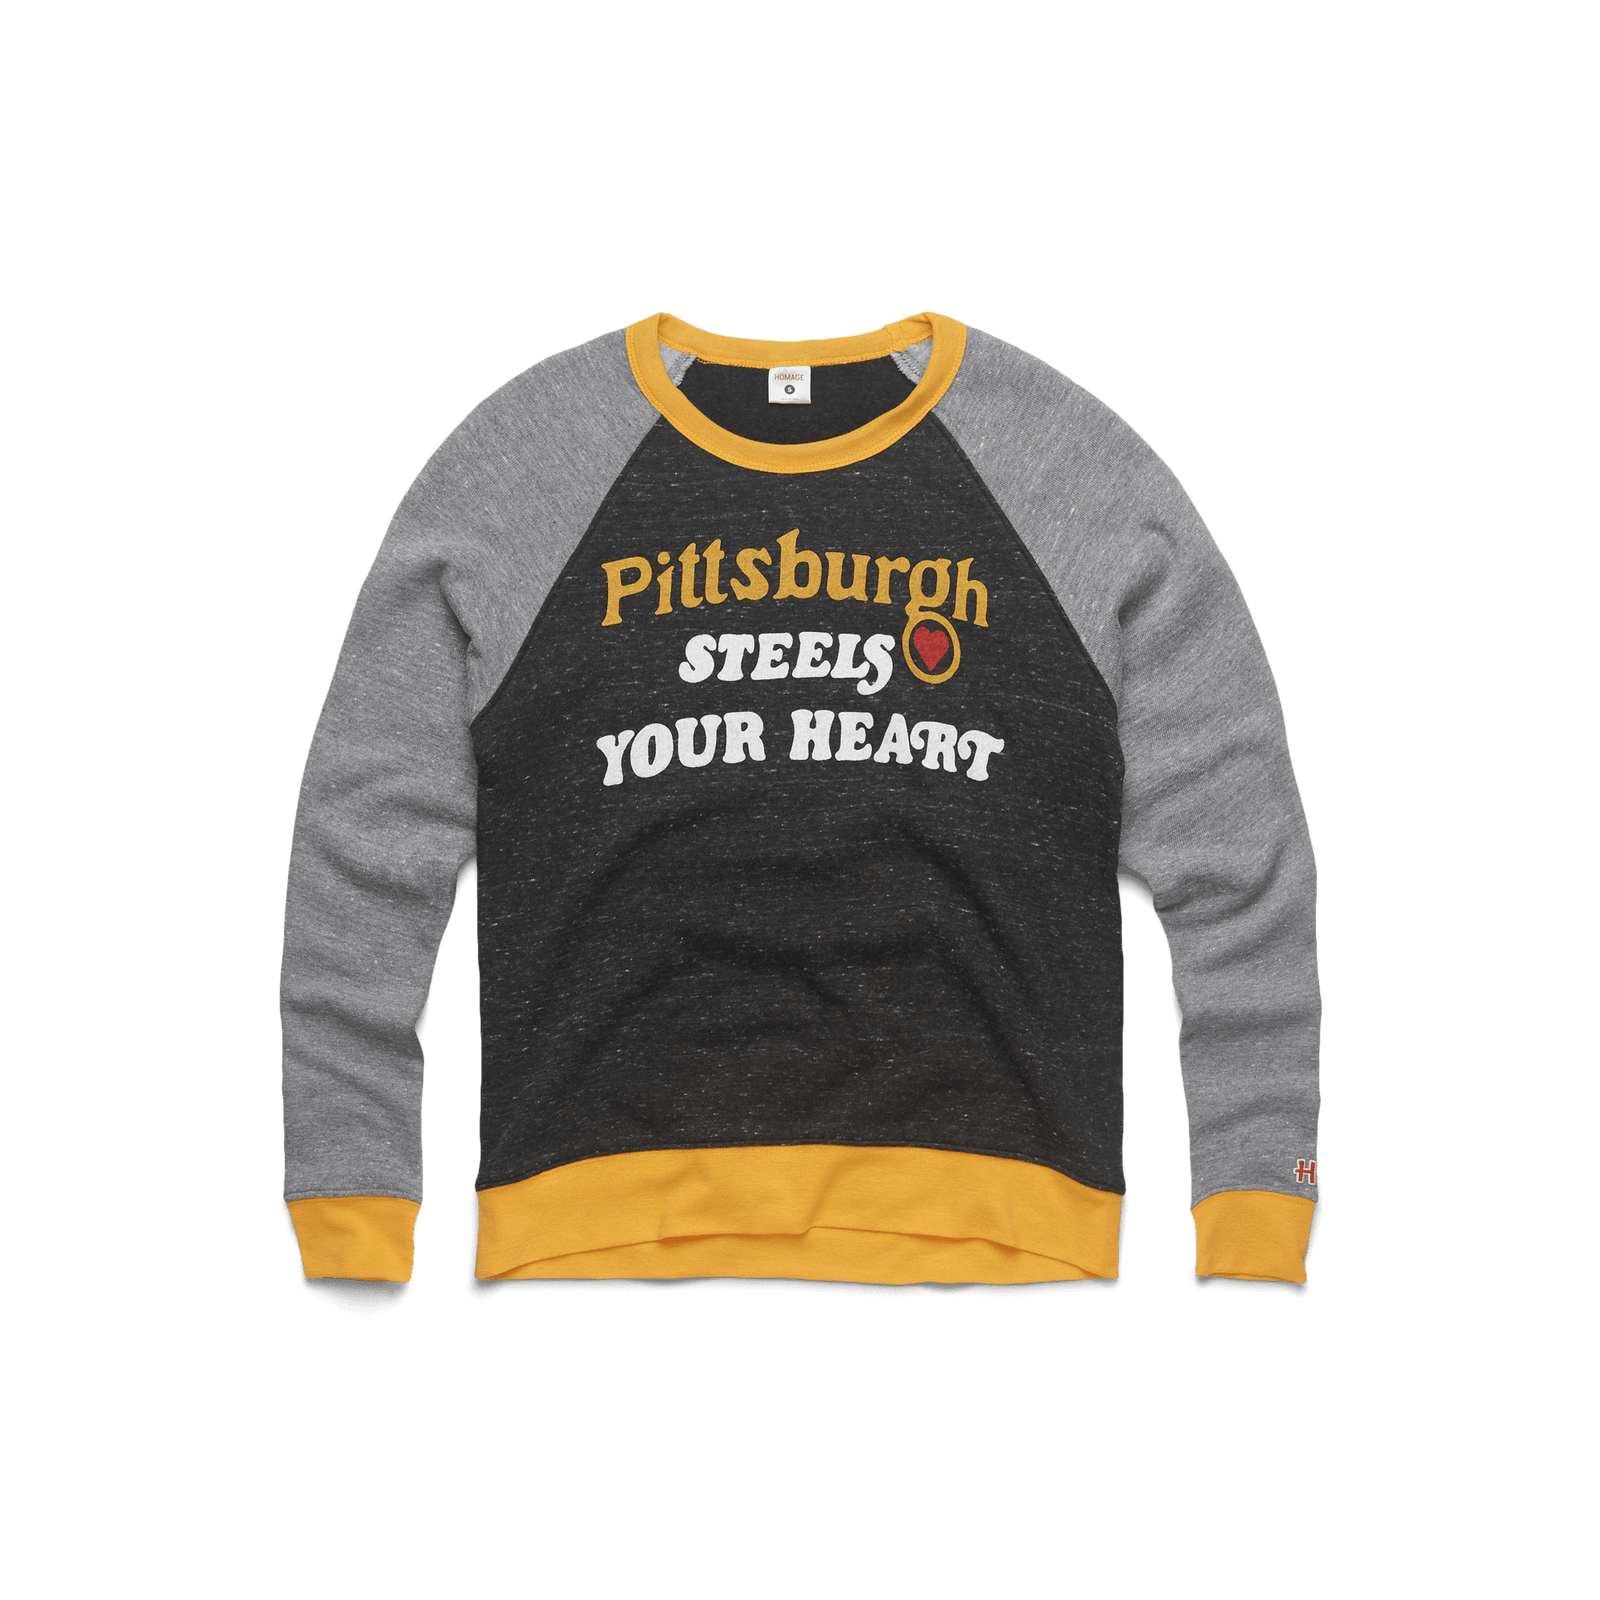 Women's Steels Your Heart Crewneck